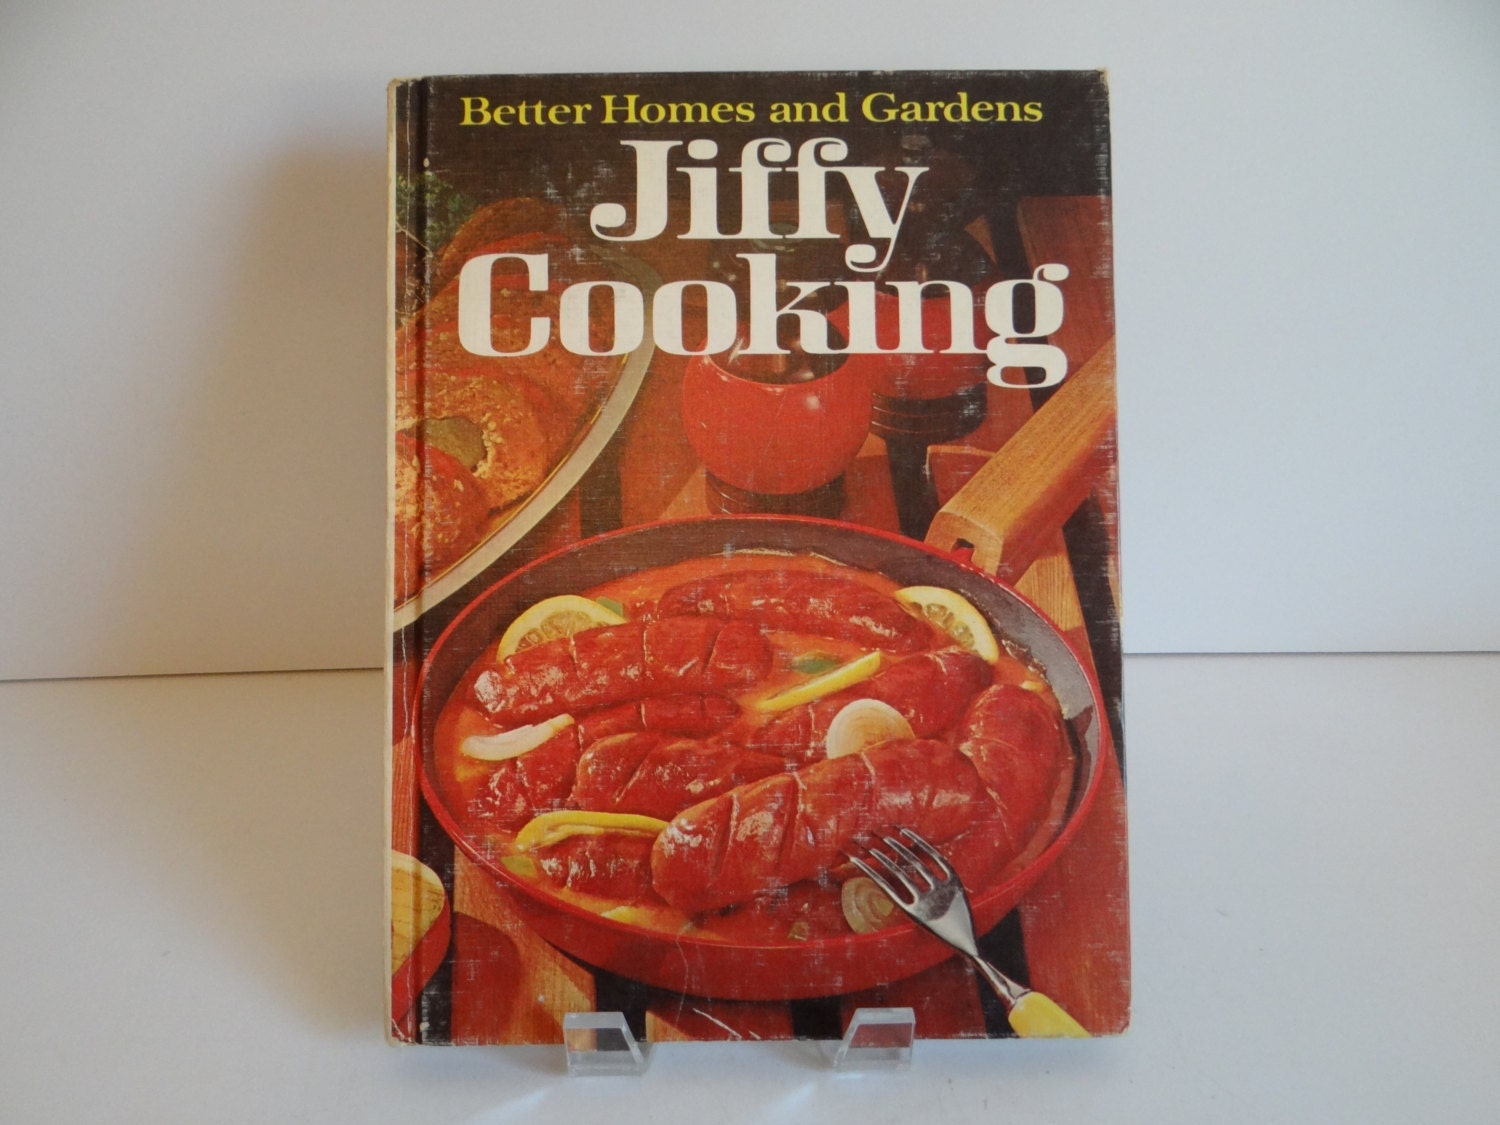 1967 Better Homes And Gardens Jiffy Cooking Cookbook Family